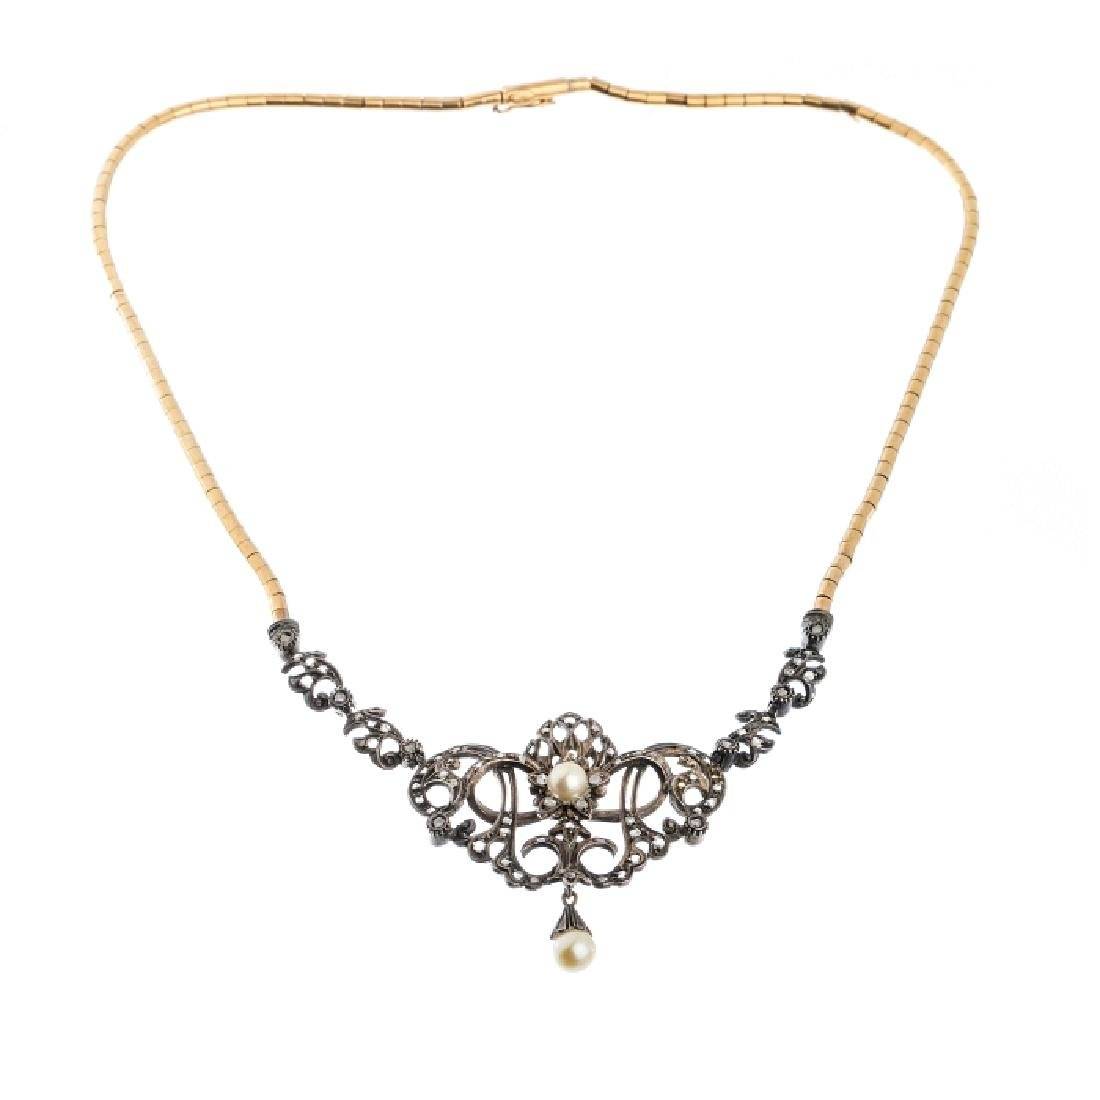 Gold necklace, silver center with diamonds